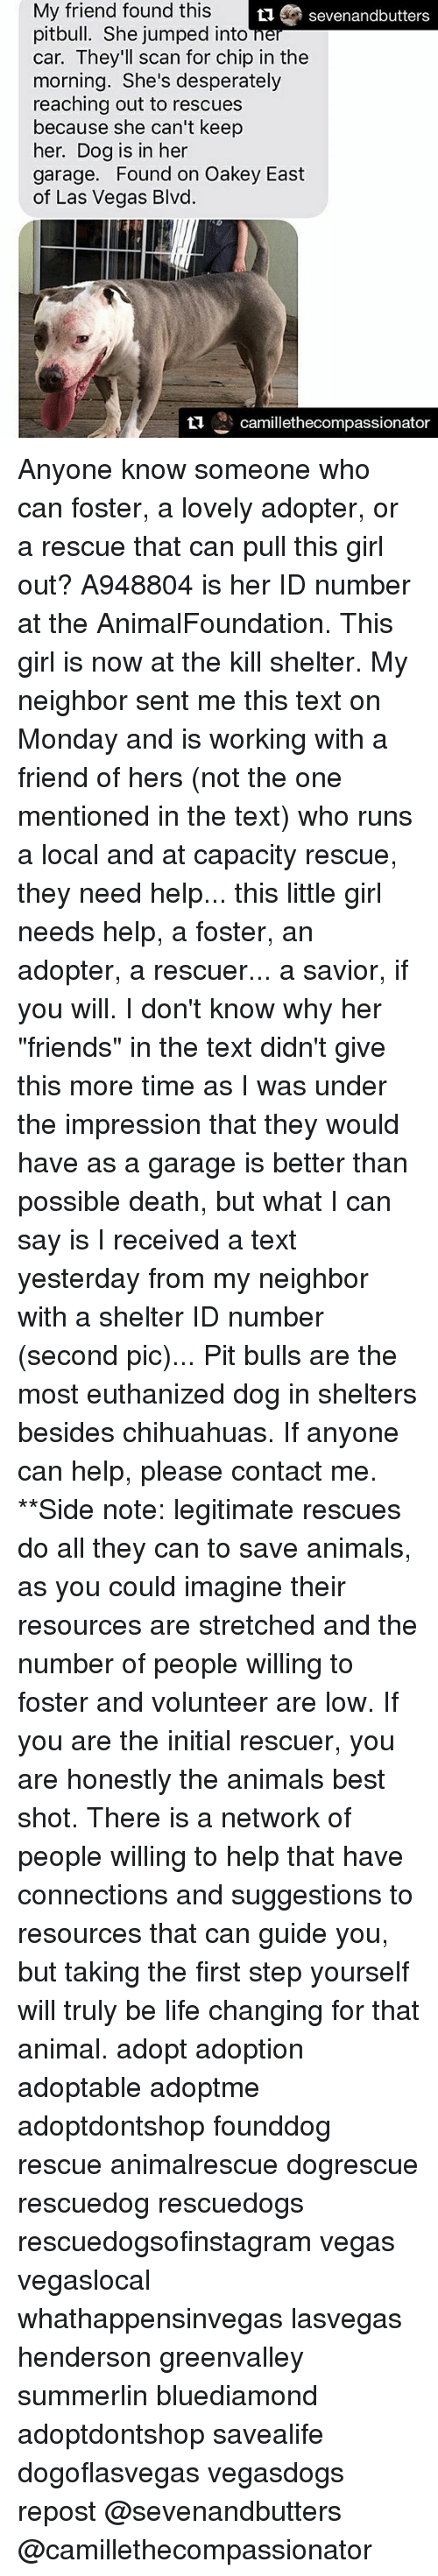 """Oakey: My friend found this  Sevenandbutters  pitbull. She jumped into  car. They'll scan for chip in the  morning. She's desperately  reaching out to rescues  because she can't keep  her. Dog is in her  garage. Found on Oakey East  of Las Vegas Blvd.  ti  camillethecompassionator Anyone know someone who can foster, a lovely adopter, or a rescue that can pull this girl out? A948804 is her ID number at the AnimalFoundation. This girl is now at the kill shelter. My neighbor sent me this text on Monday and is working with a friend of hers (not the one mentioned in the text) who runs a local and at capacity rescue, they need help... this little girl needs help, a foster, an adopter, a rescuer... a savior, if you will. I don't know why her """"friends"""" in the text didn't give this more time as I was under the impression that they would have as a garage is better than possible death, but what I can say is I received a text yesterday from my neighbor with a shelter ID number (second pic)... Pit bulls are the most euthanized dog in shelters besides chihuahuas. If anyone can help, please contact me. **Side note: legitimate rescues do all they can to save animals, as you could imagine their resources are stretched and the number of people willing to foster and volunteer are low. If you are the initial rescuer, you are honestly the animals best shot. There is a network of people willing to help that have connections and suggestions to resources that can guide you, but taking the first step yourself will truly be life changing for that animal. adopt adoption adoptable adoptme adoptdontshop founddog rescue animalrescue dogrescue rescuedog rescuedogs rescuedogsofinstagram vegas vegaslocal whathappensinvegas lasvegas henderson greenvalley summerlin bluediamond adoptdontshop savealife dogoflasvegas vegasdogs repost @sevenandbutters @camillethecompassionator"""